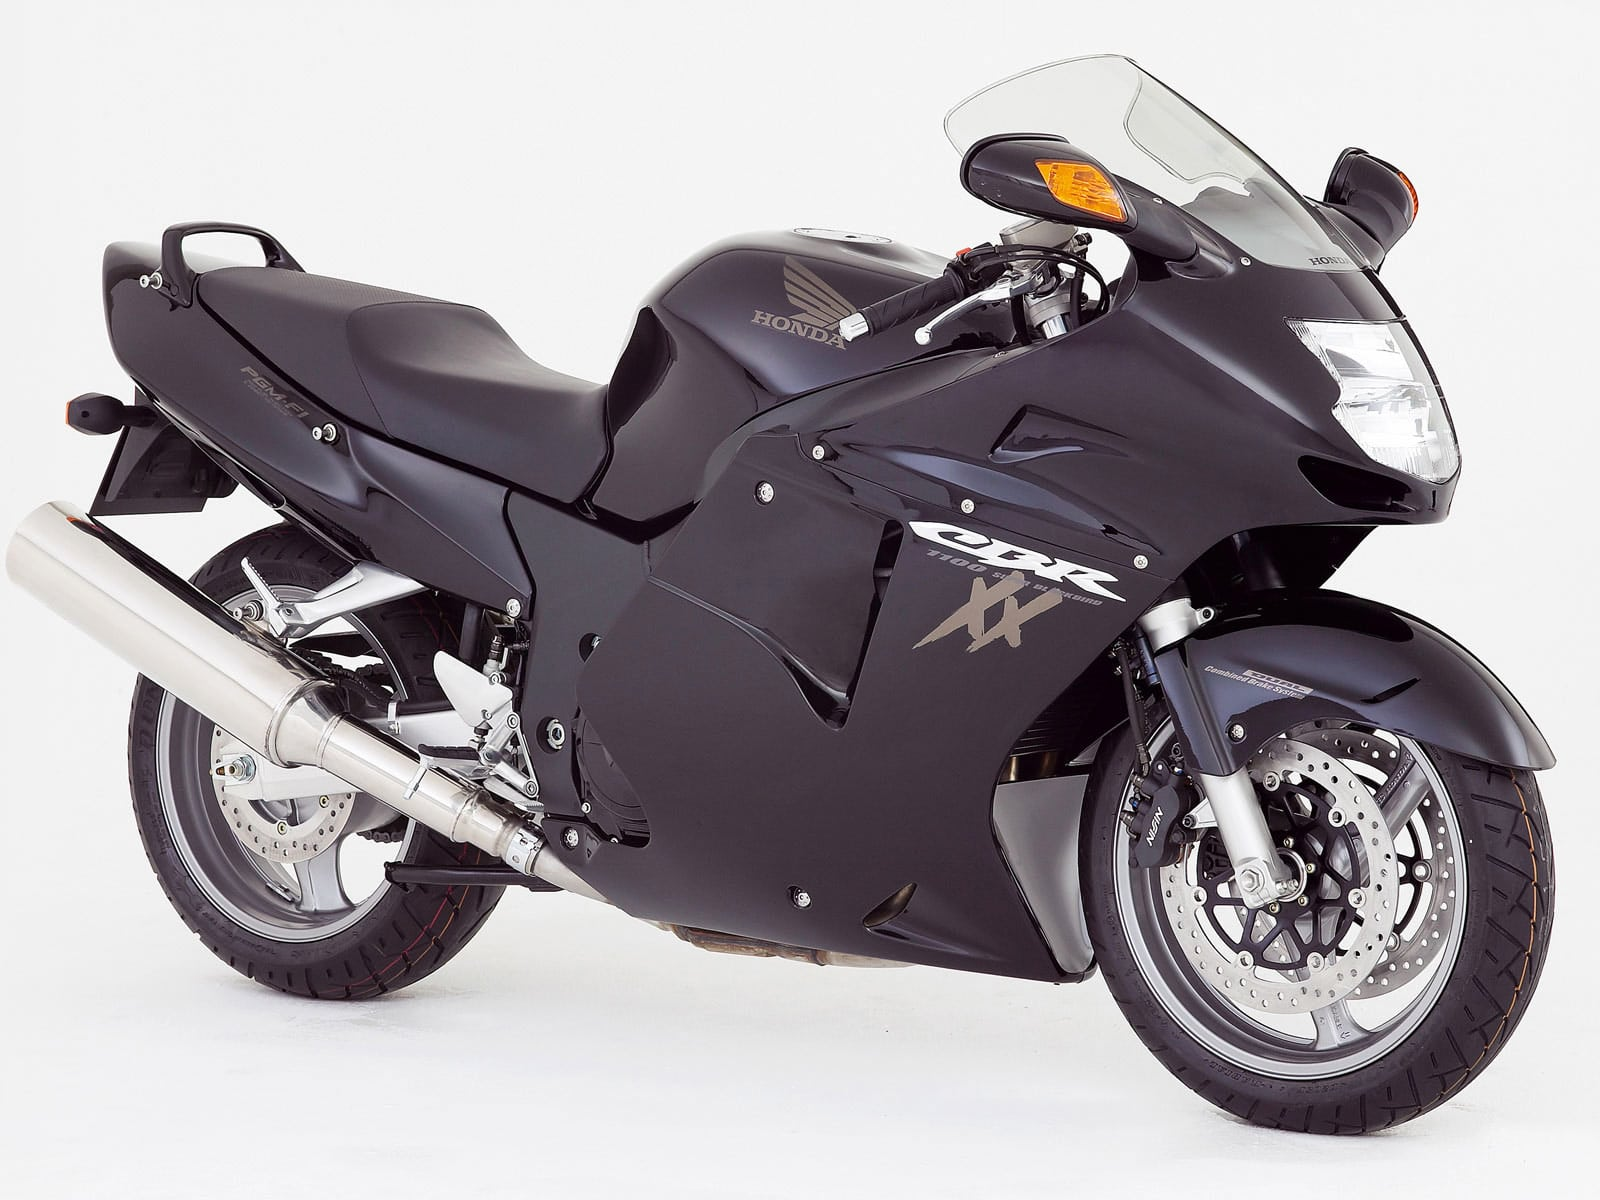 Honda Blackbird CBR1100XX Screensavers